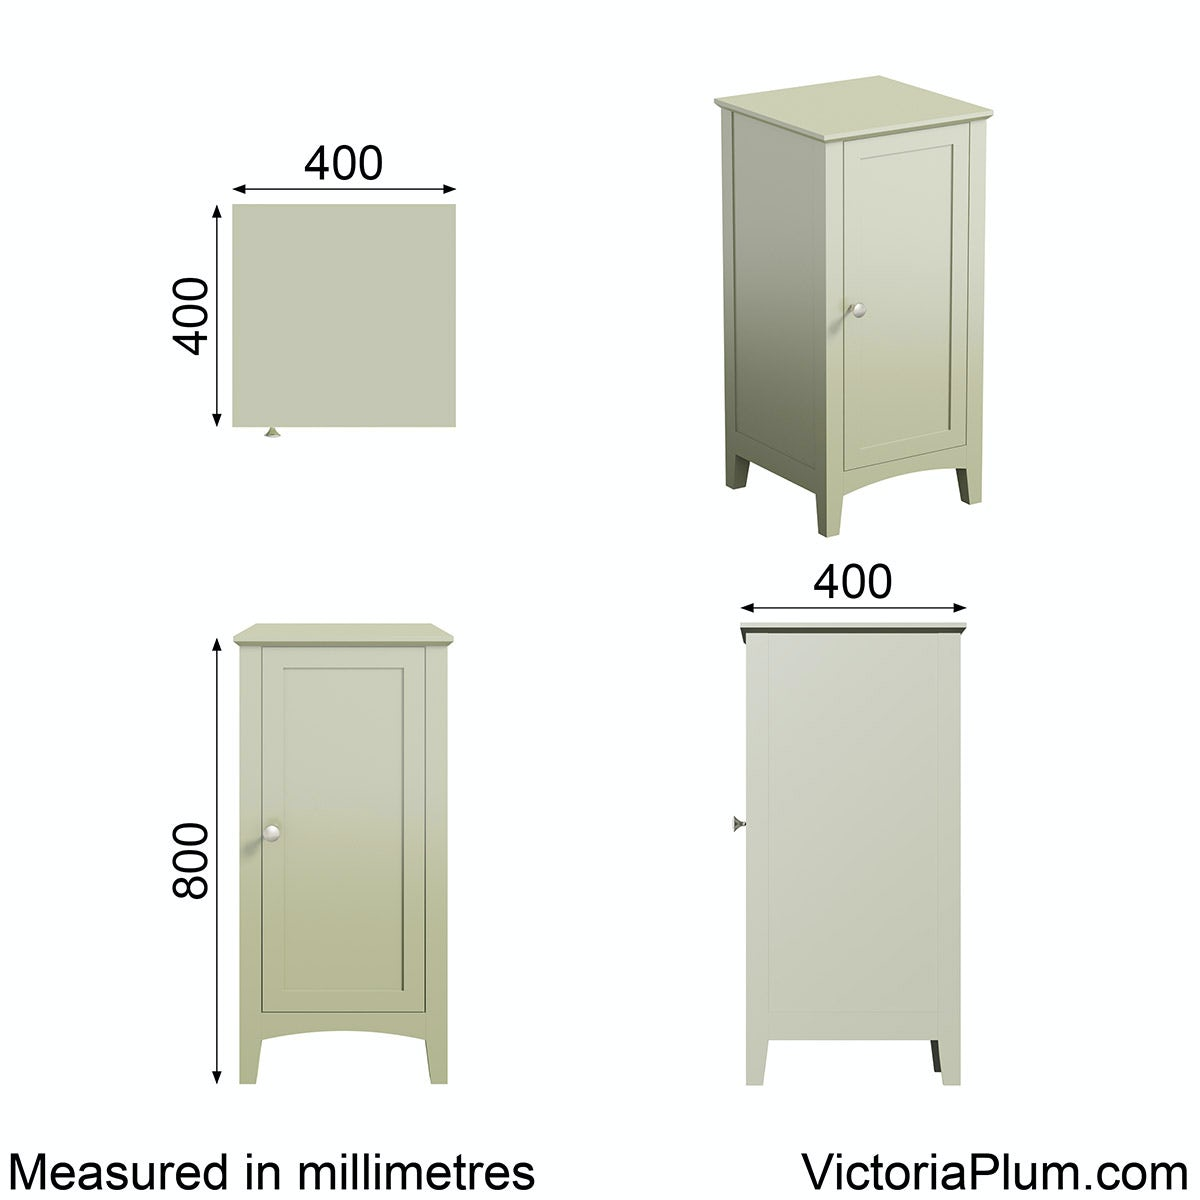 Dimensions for The Bath Co. Camberley sage storage unit